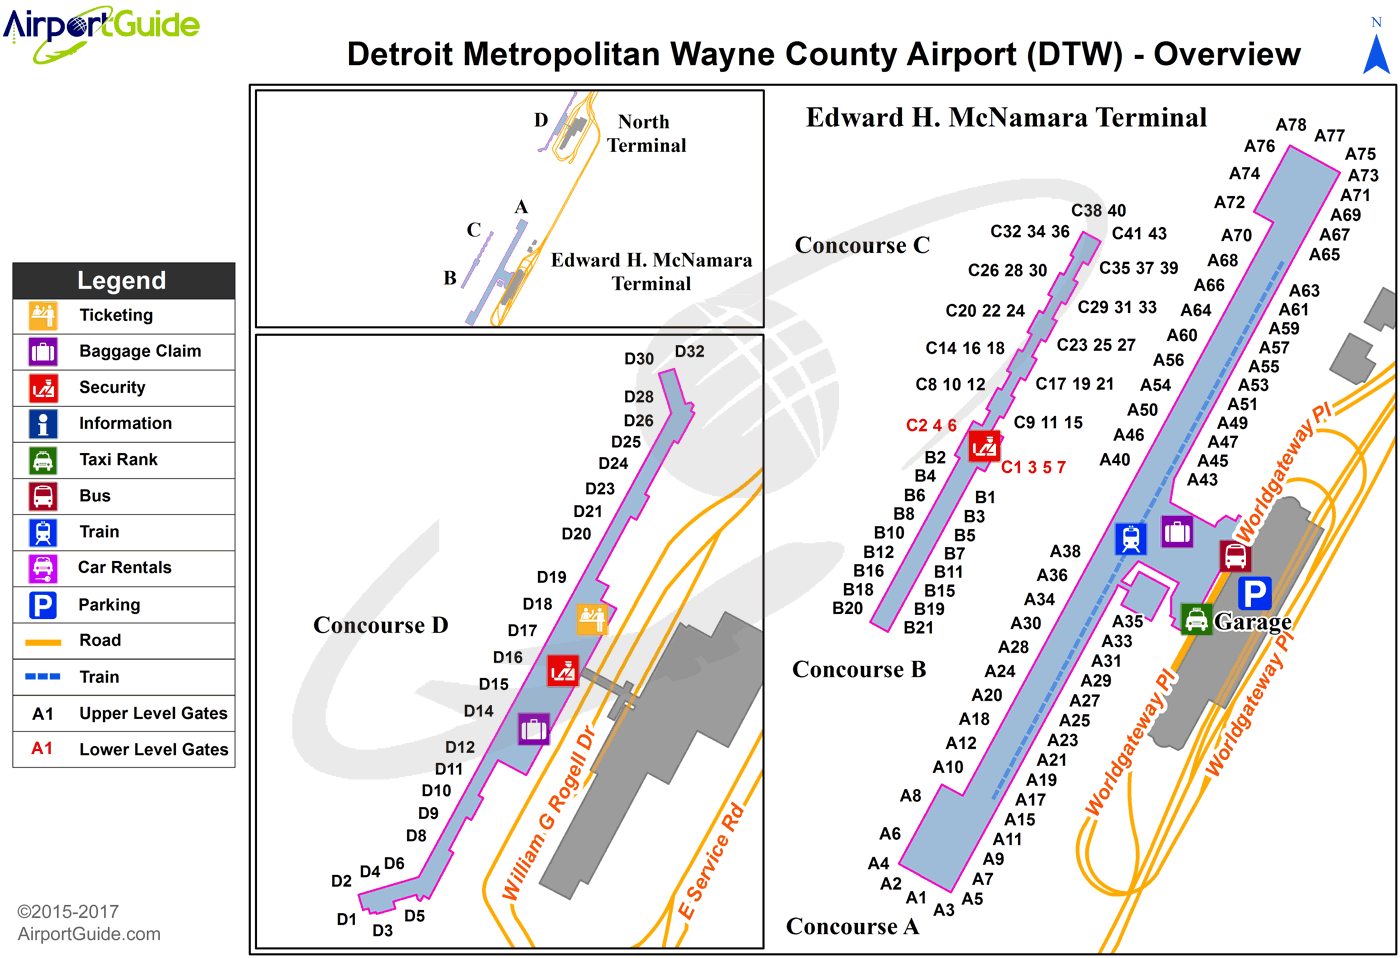 dtw north terminal map Detroit Detroit Metropolitan Wayne County Dtw Airport Terminal dtw north terminal map